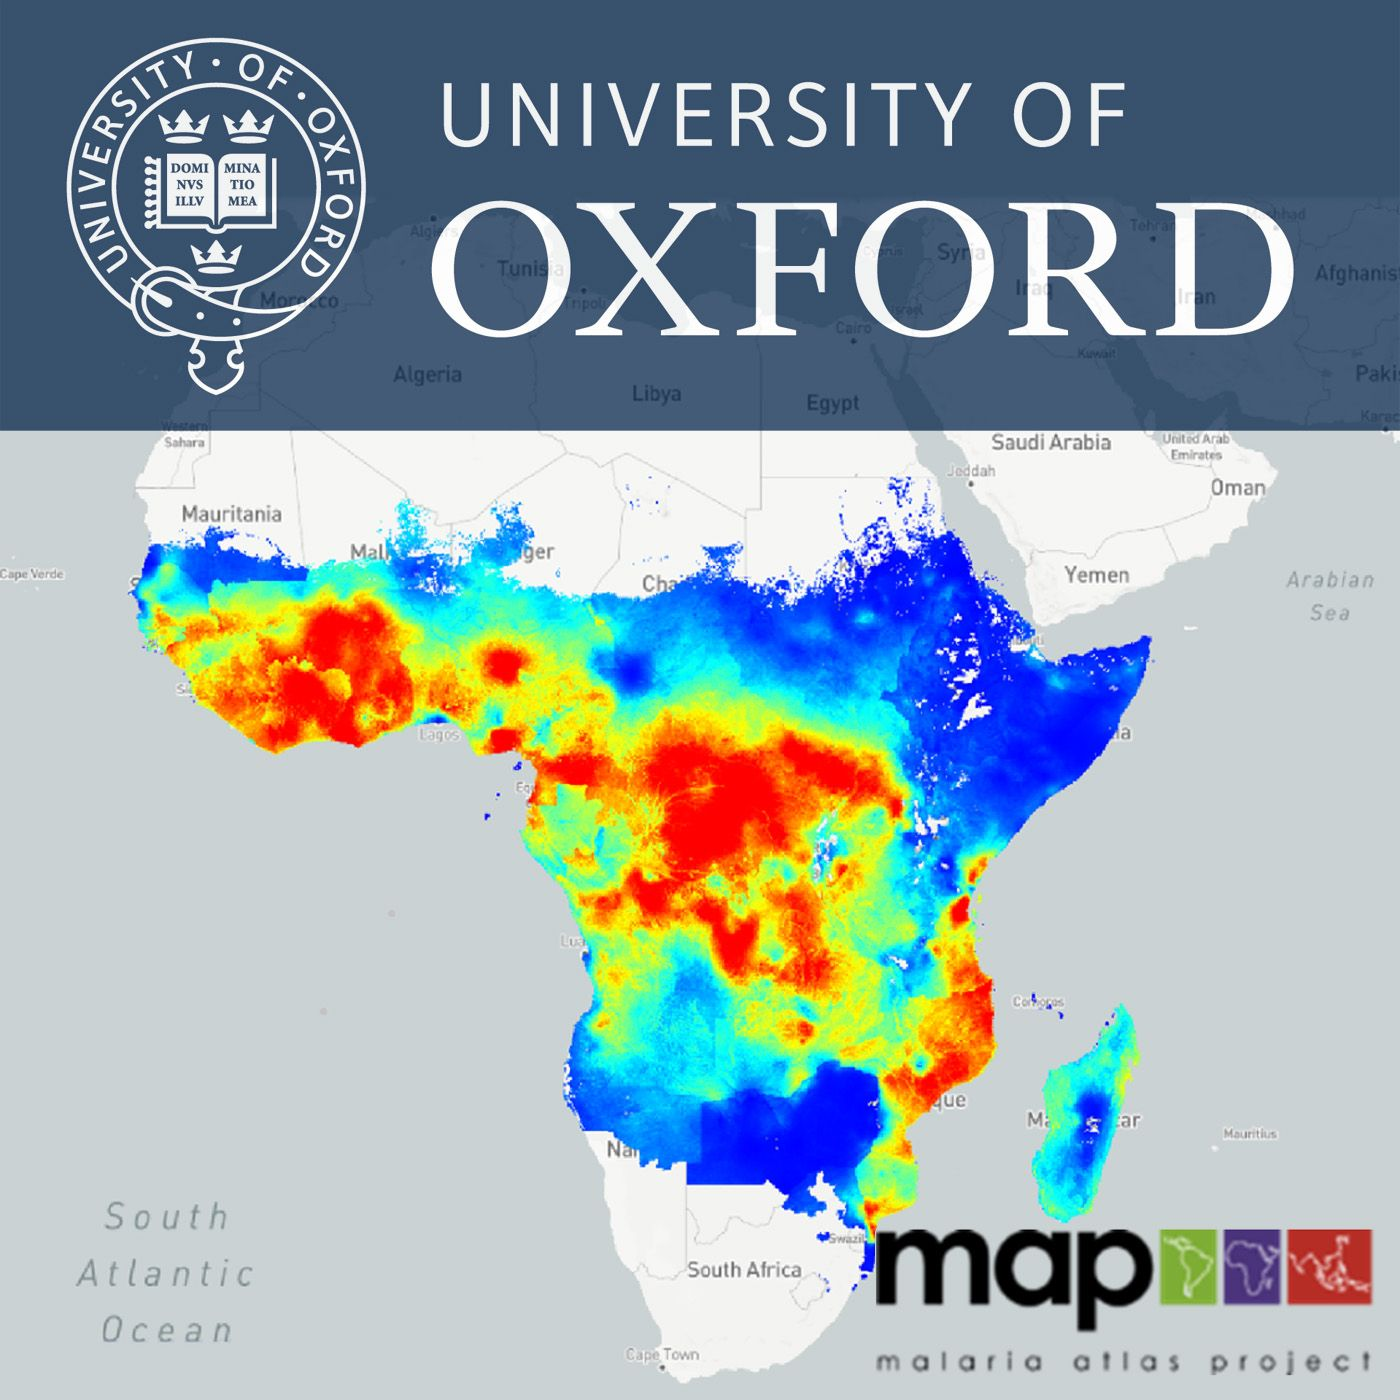 Statistical methods used to map malaria and other infectious diseases